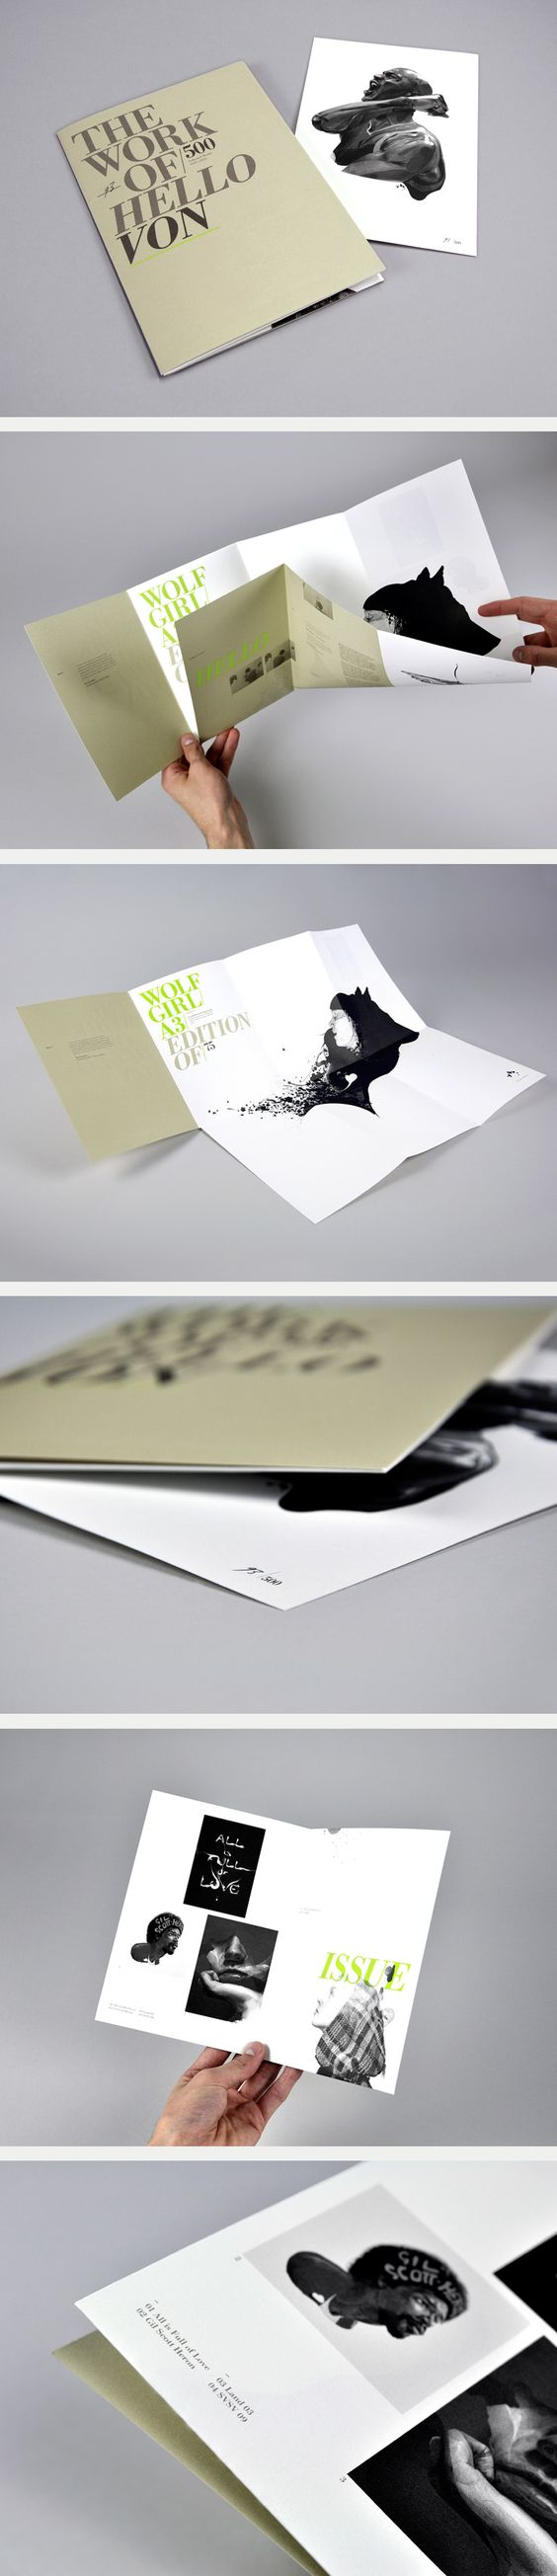 Elegant folding brochure that slowly reveals itself to you promoting HelloVon by Six